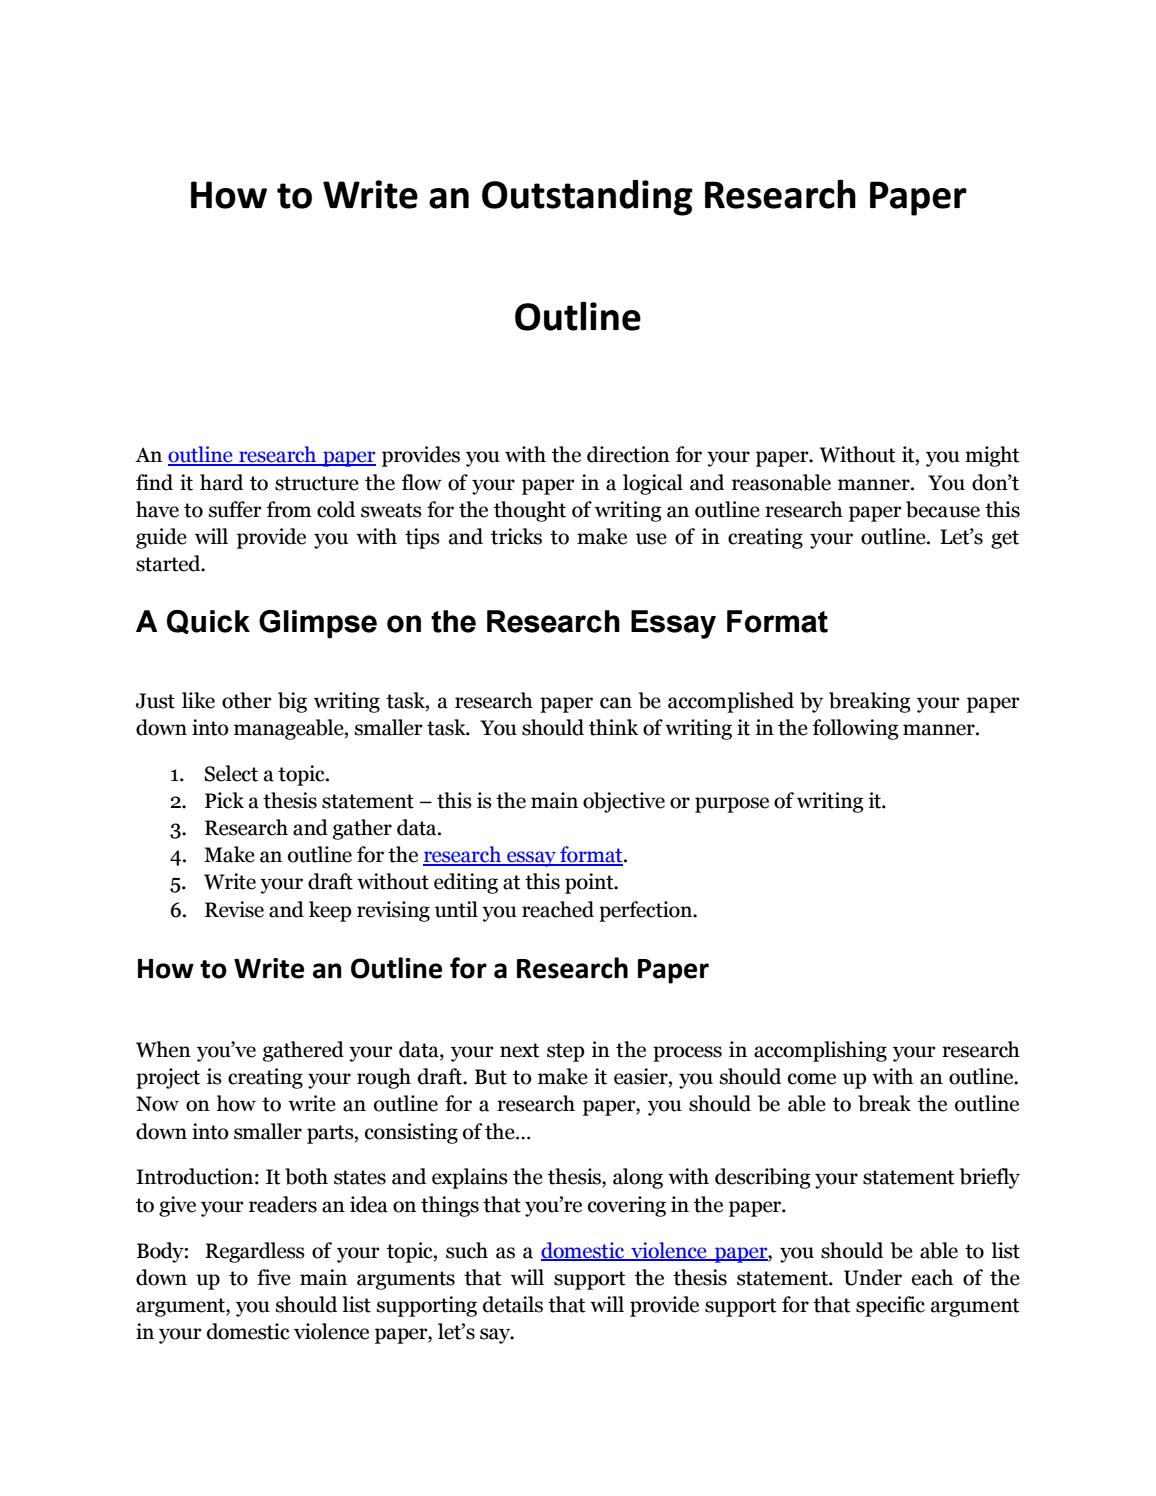 012 How To Write An Outline For Research Paper Page 1 Rare A Ppt Apa Mla Style Full